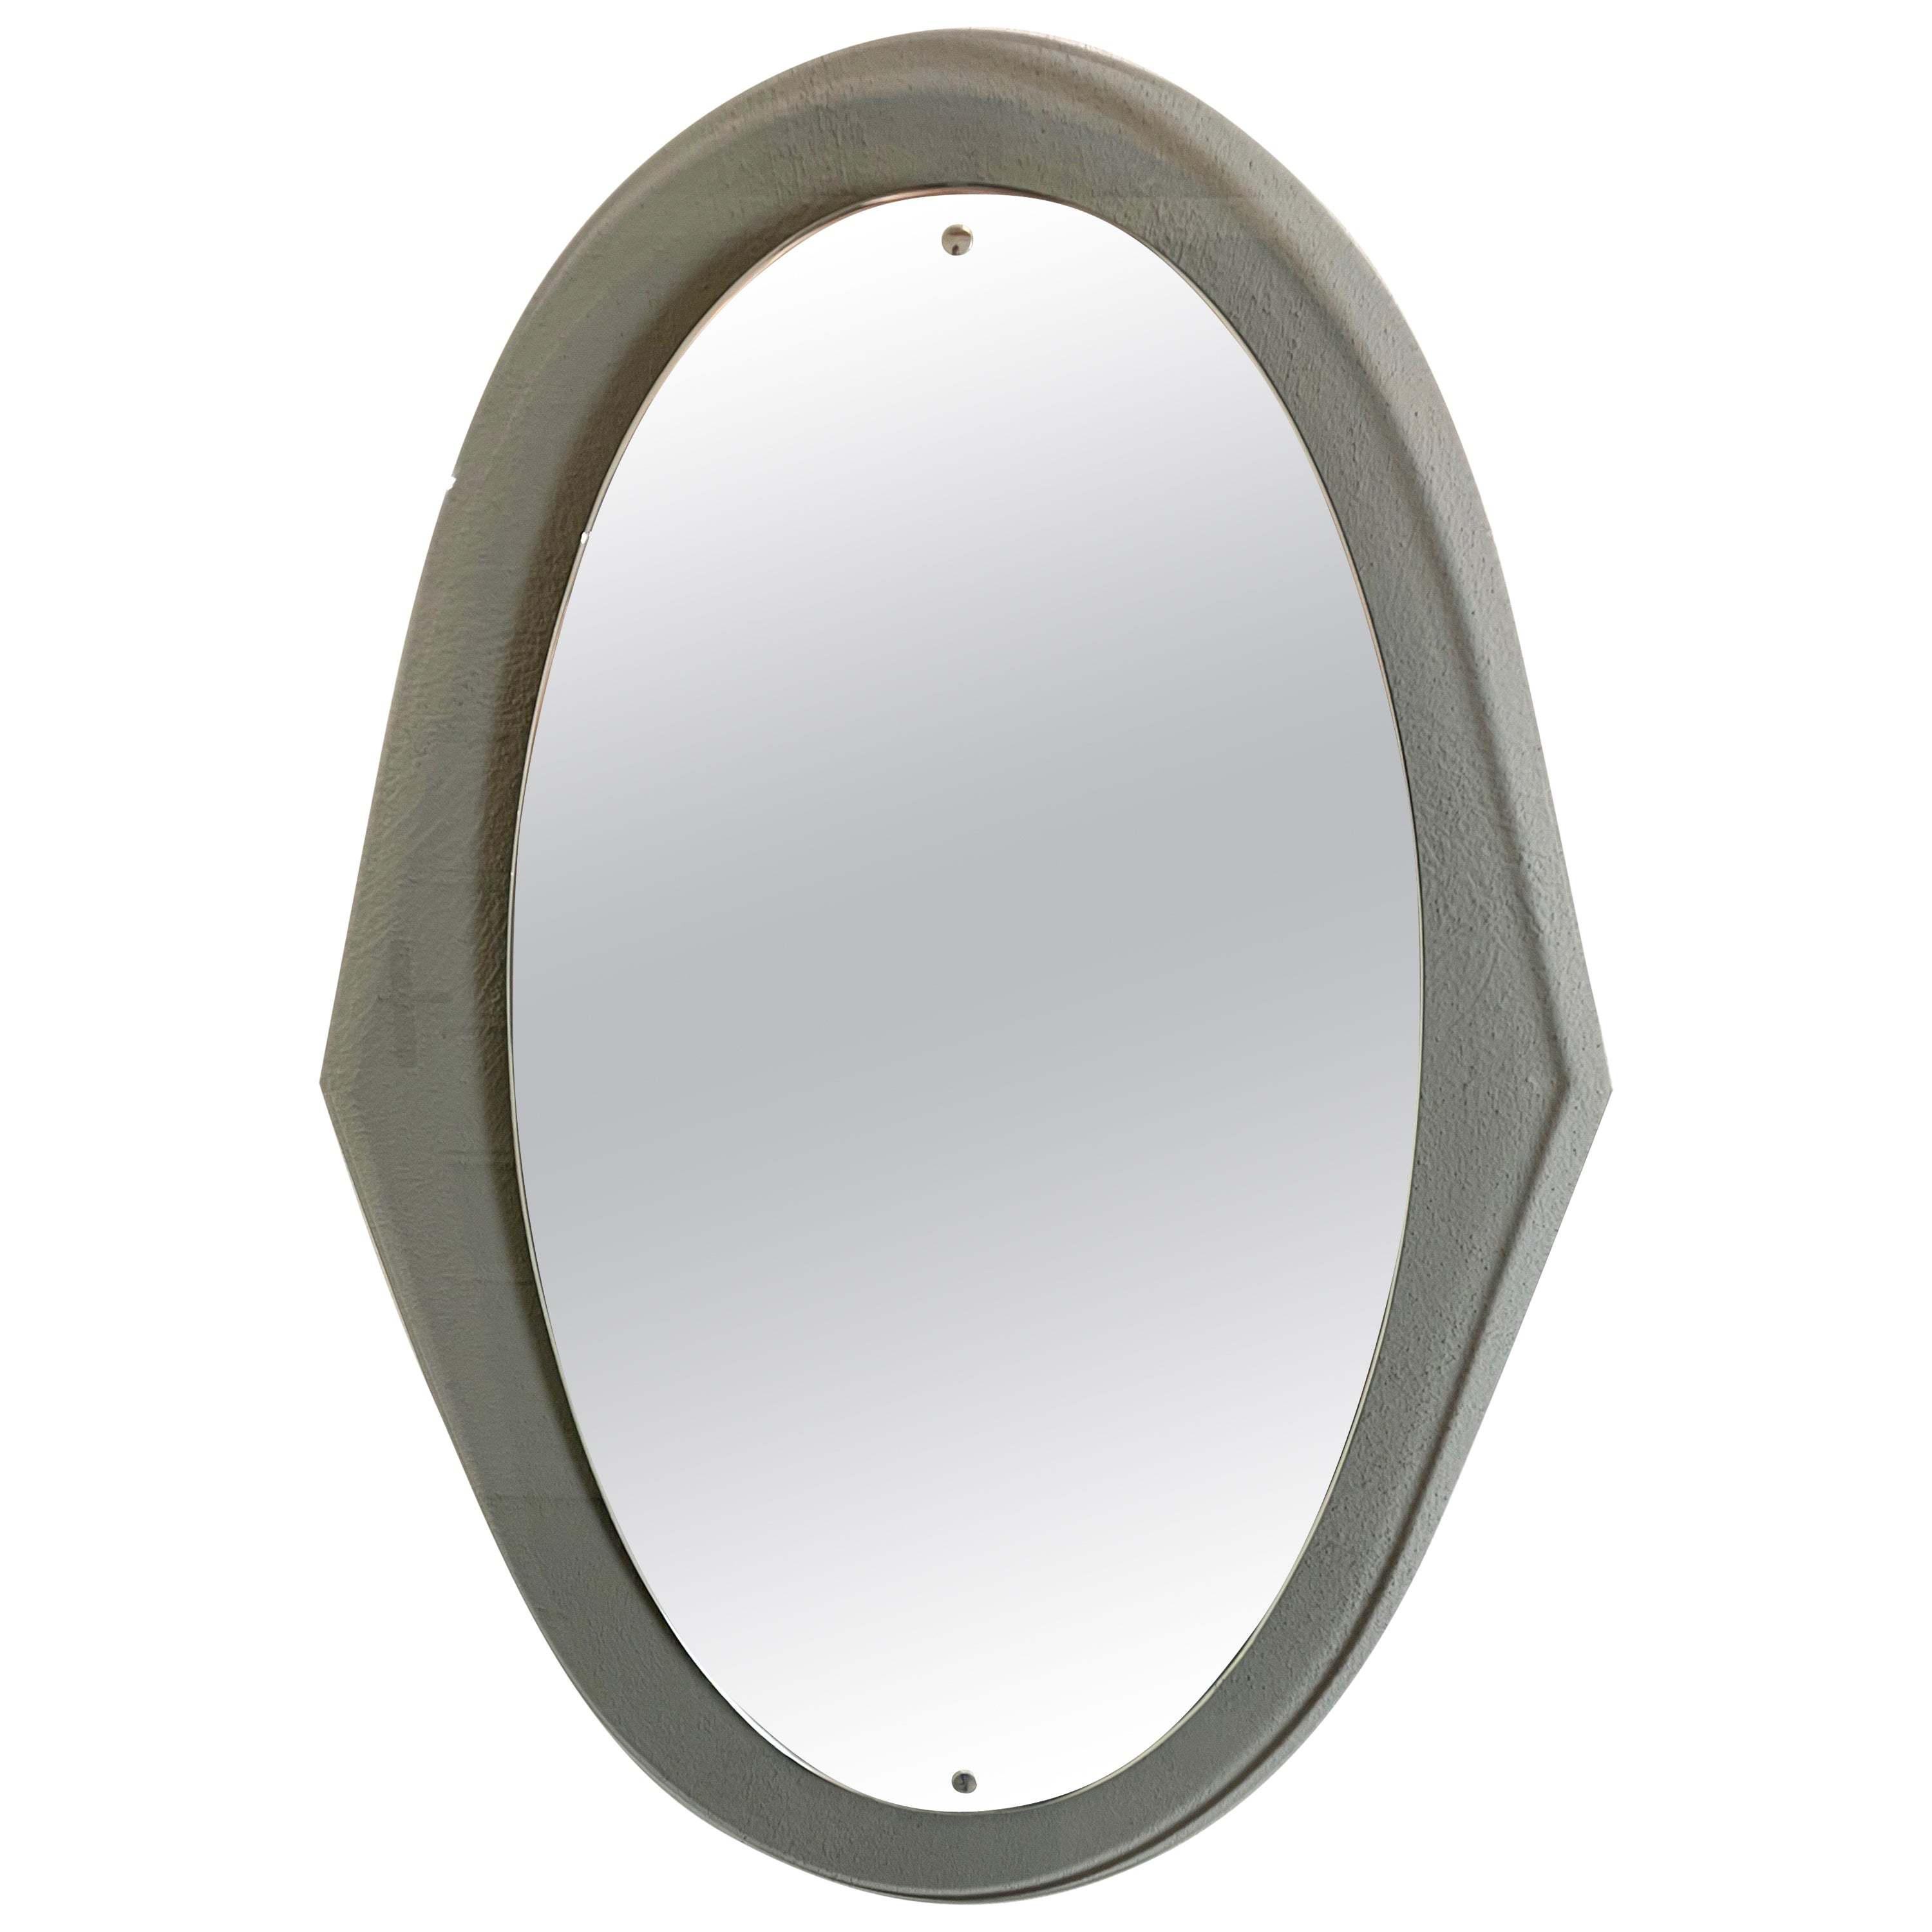 Oval Wall Mirror Attributed to Cristal Arte, Italy, 1960s